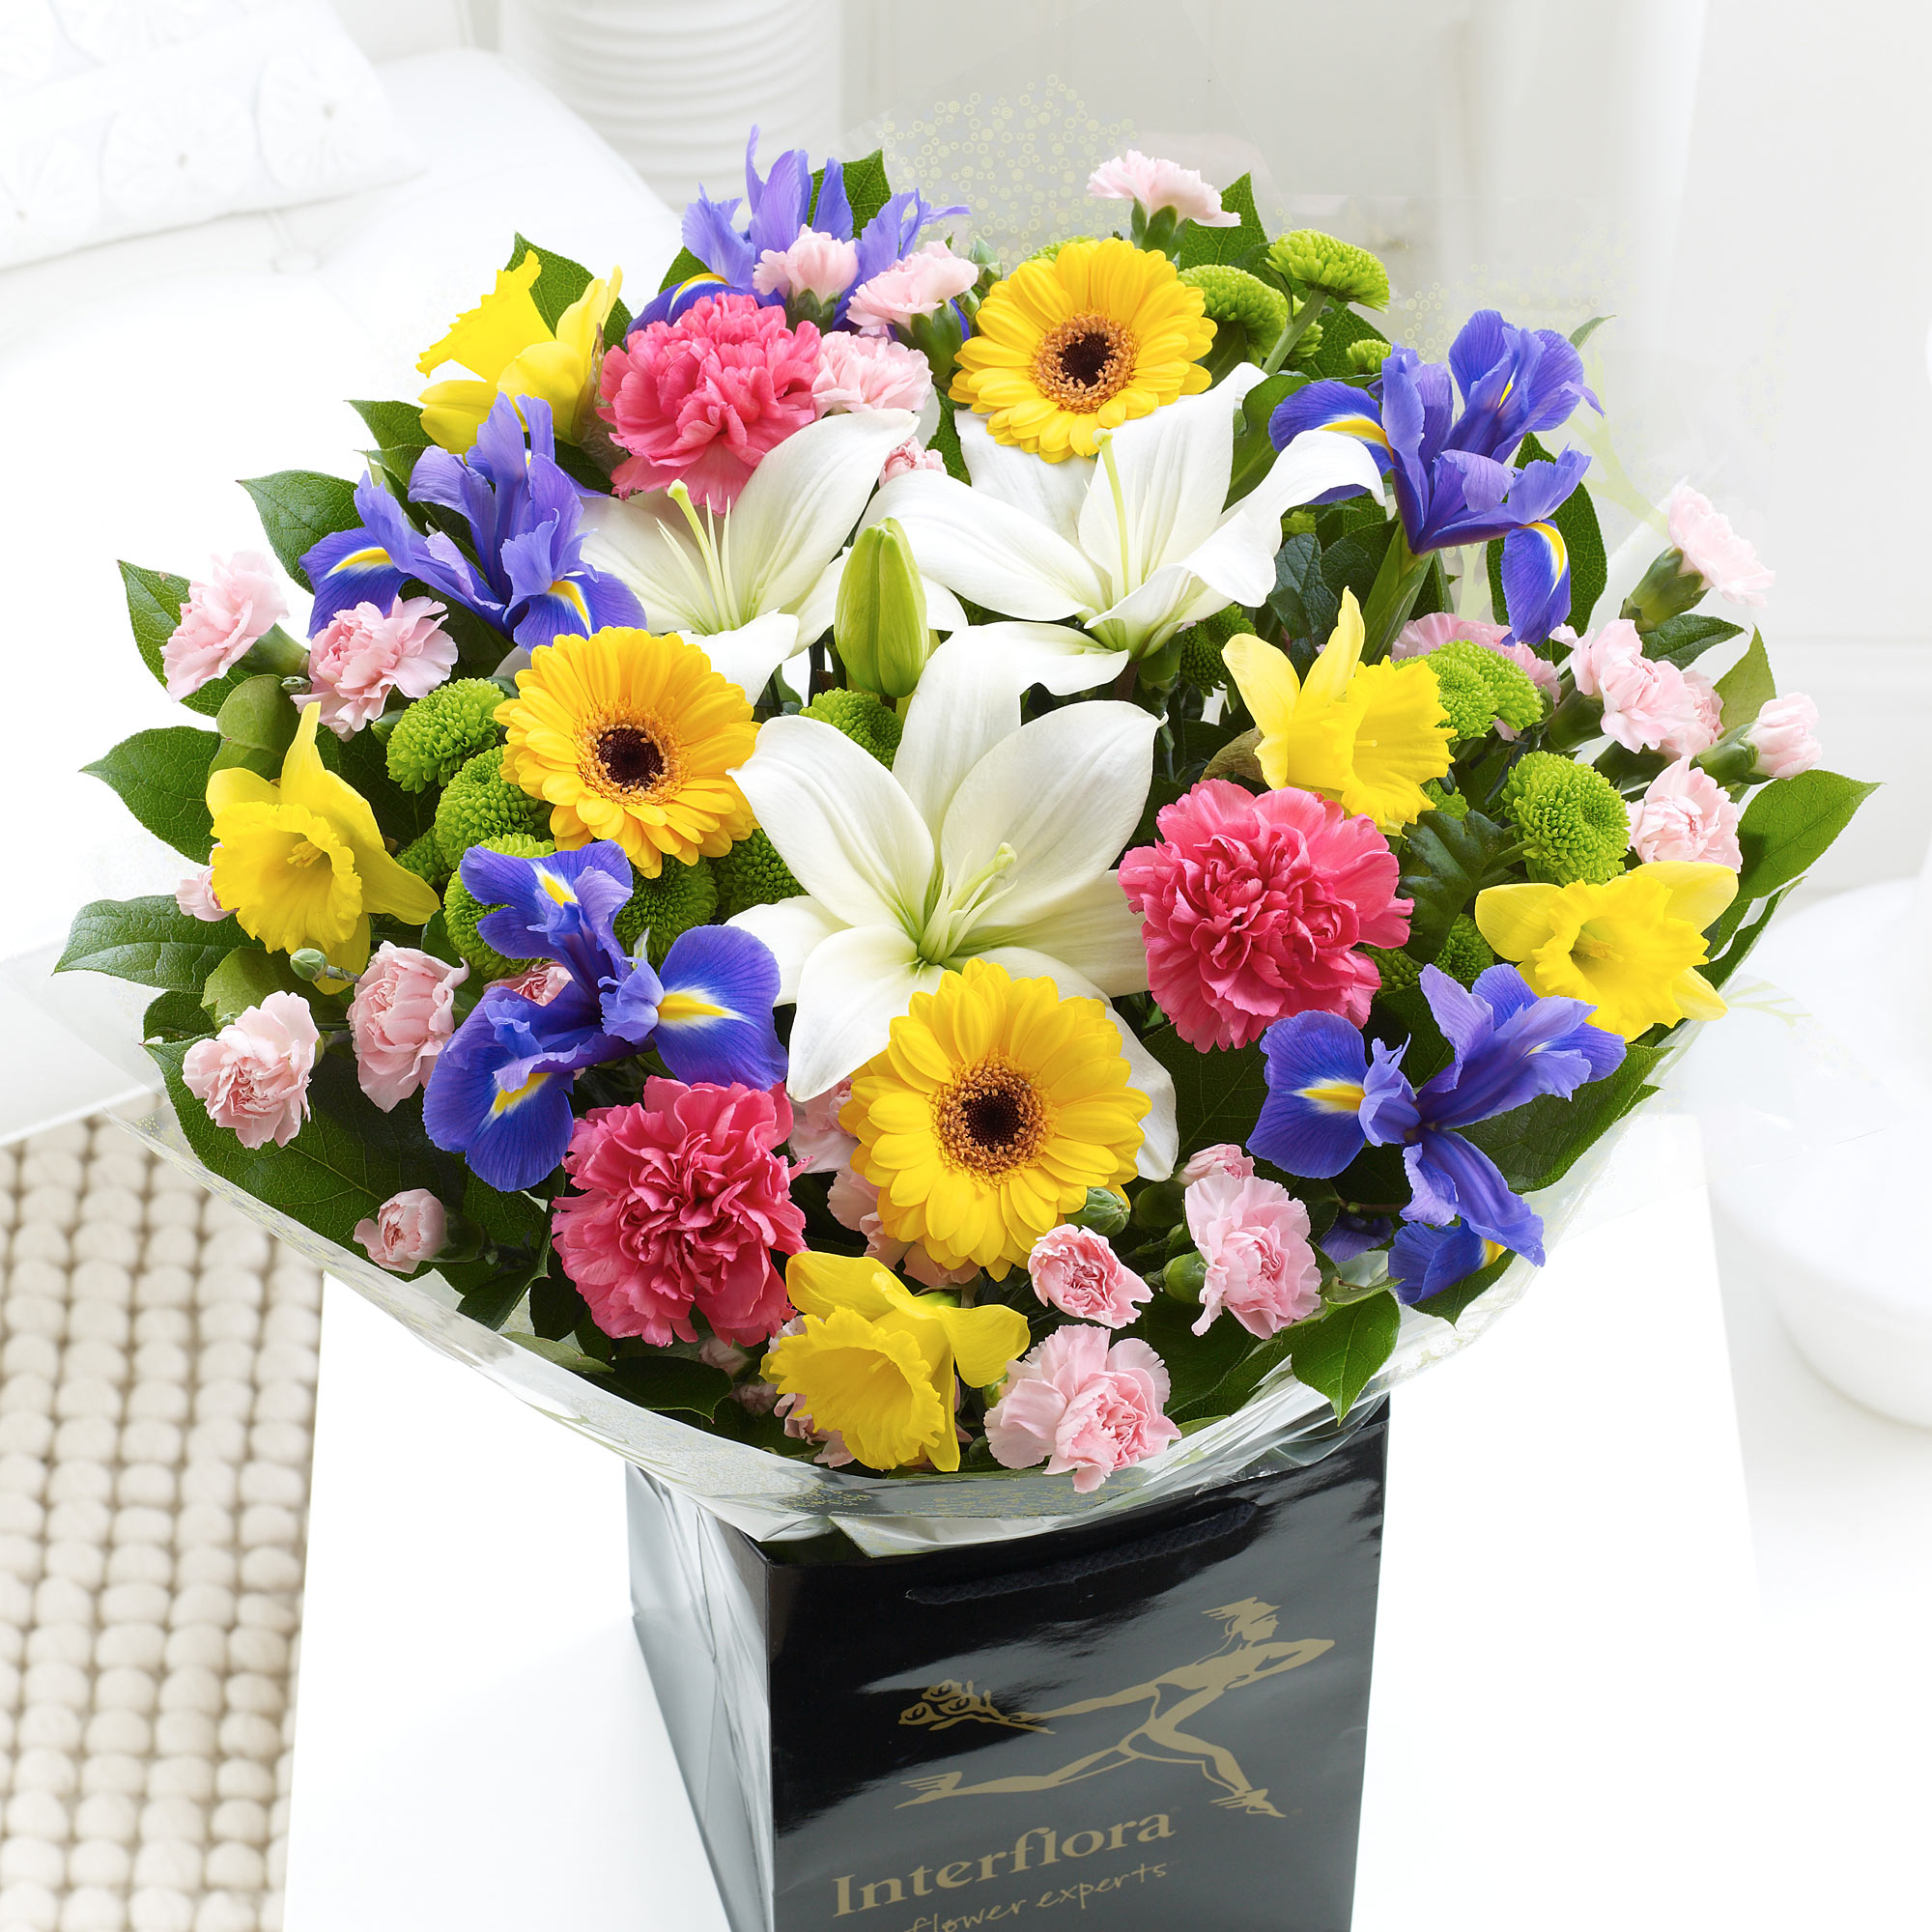 Ht Hopping Into Spring Large Fleurtations Flowers